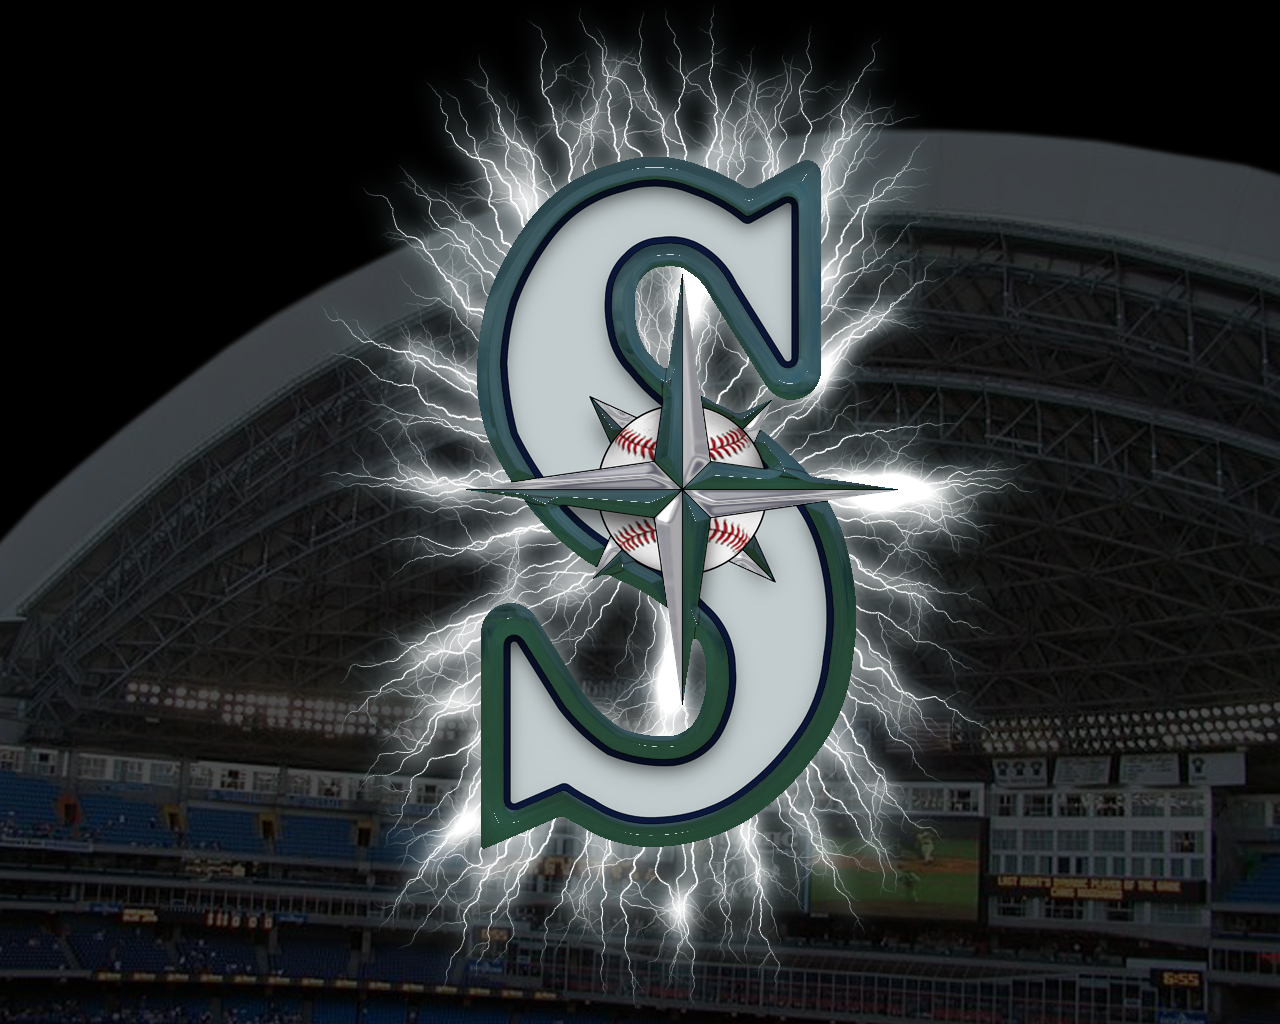 1280x1024 - Seattle Mariners Wallpapers 28